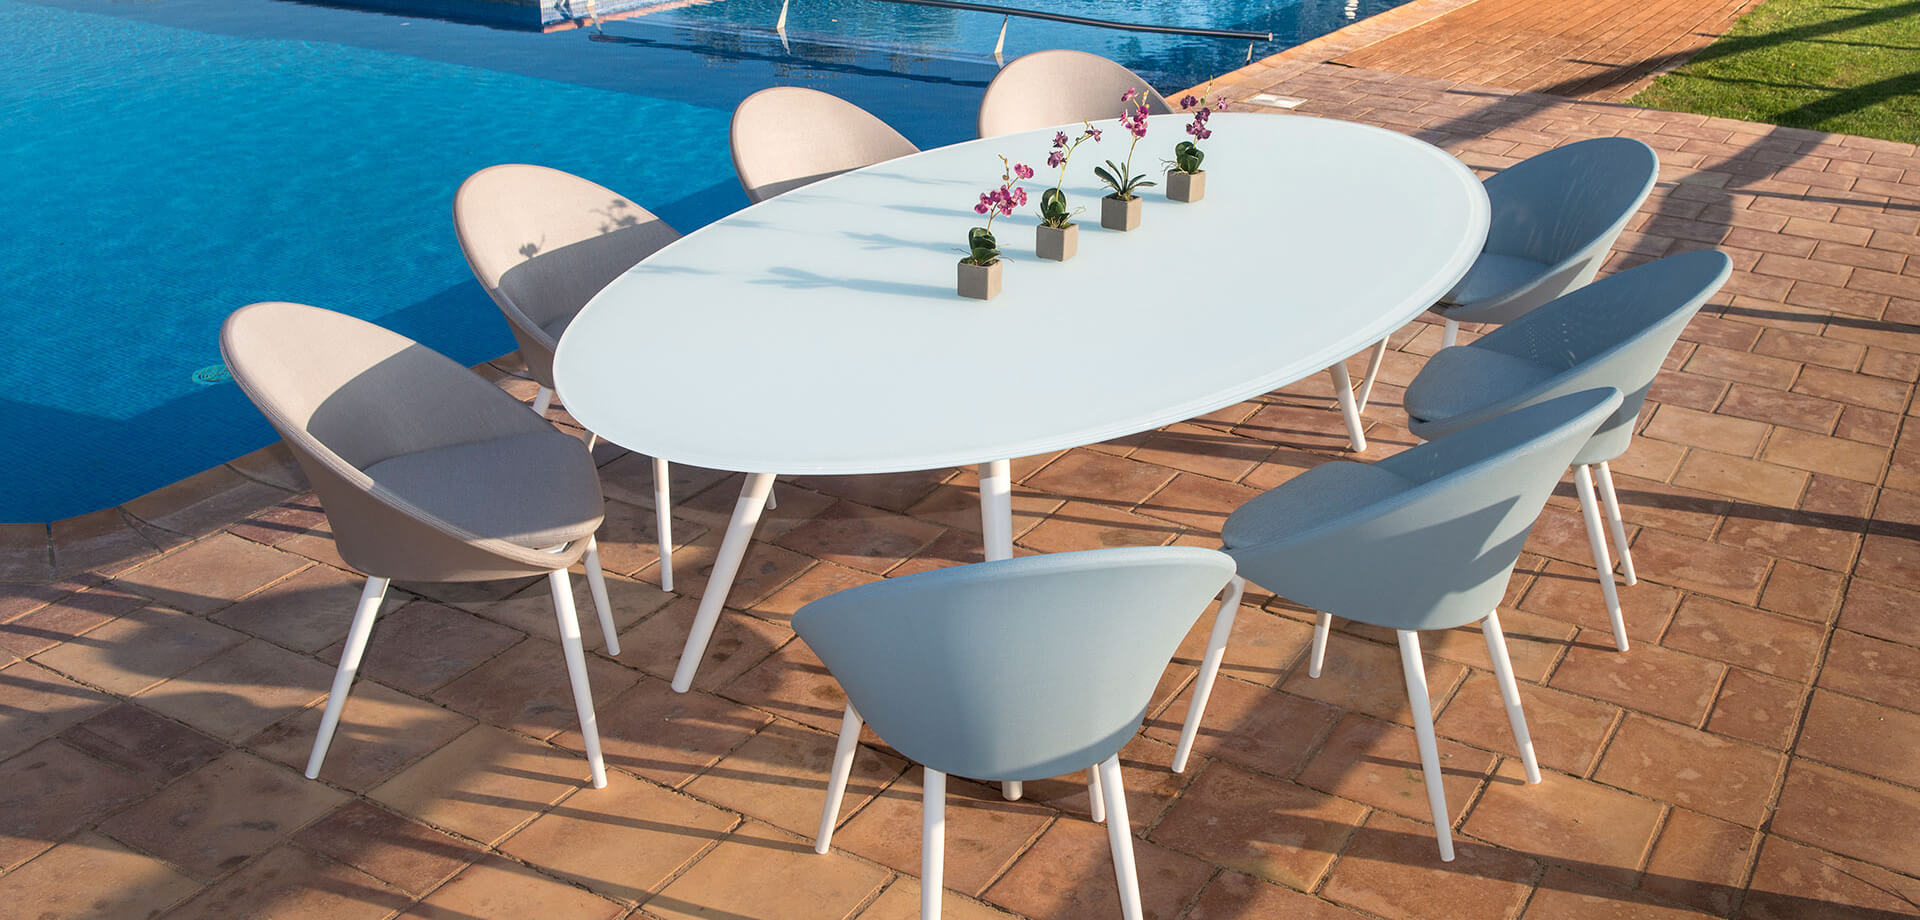 Divine Dining Chair Table Sofa Rope Textilene Spa All Weather Aluminum  Contract Hospitality Commercial Pool Furniture